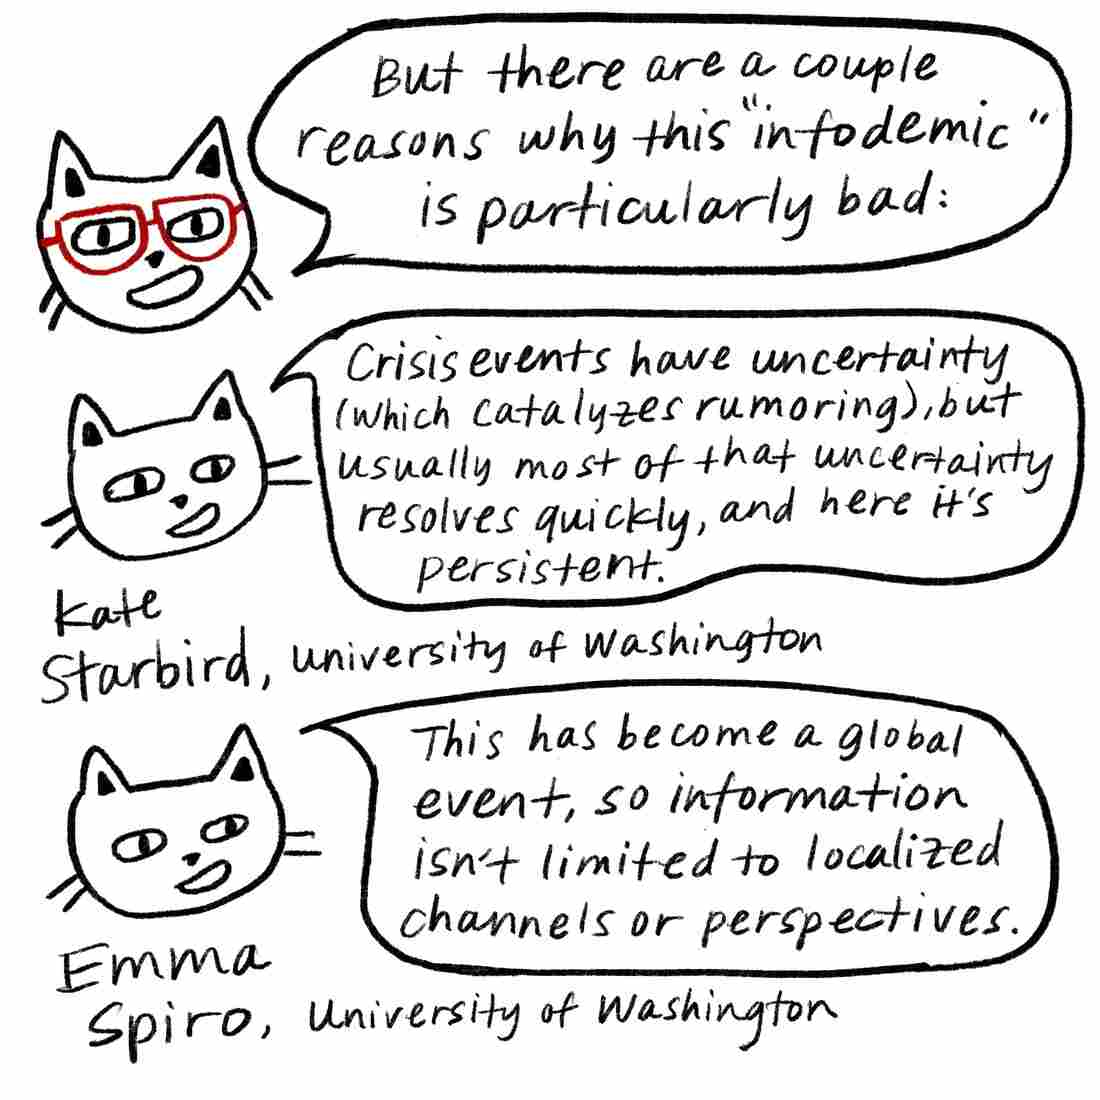 """But there are a couple reasons why this 'infodemic' is particularly bad,"" says Glasses Cat. Kate Starbird, from the University of Washington, adds on, ""Crisis events have uncertainty, which usually resolves quickly, and here it's persistent."" Emma Spiro, from the University of Washington, adds, ""This has become a global event, so information isn't limited to localized channels or perspectives."""